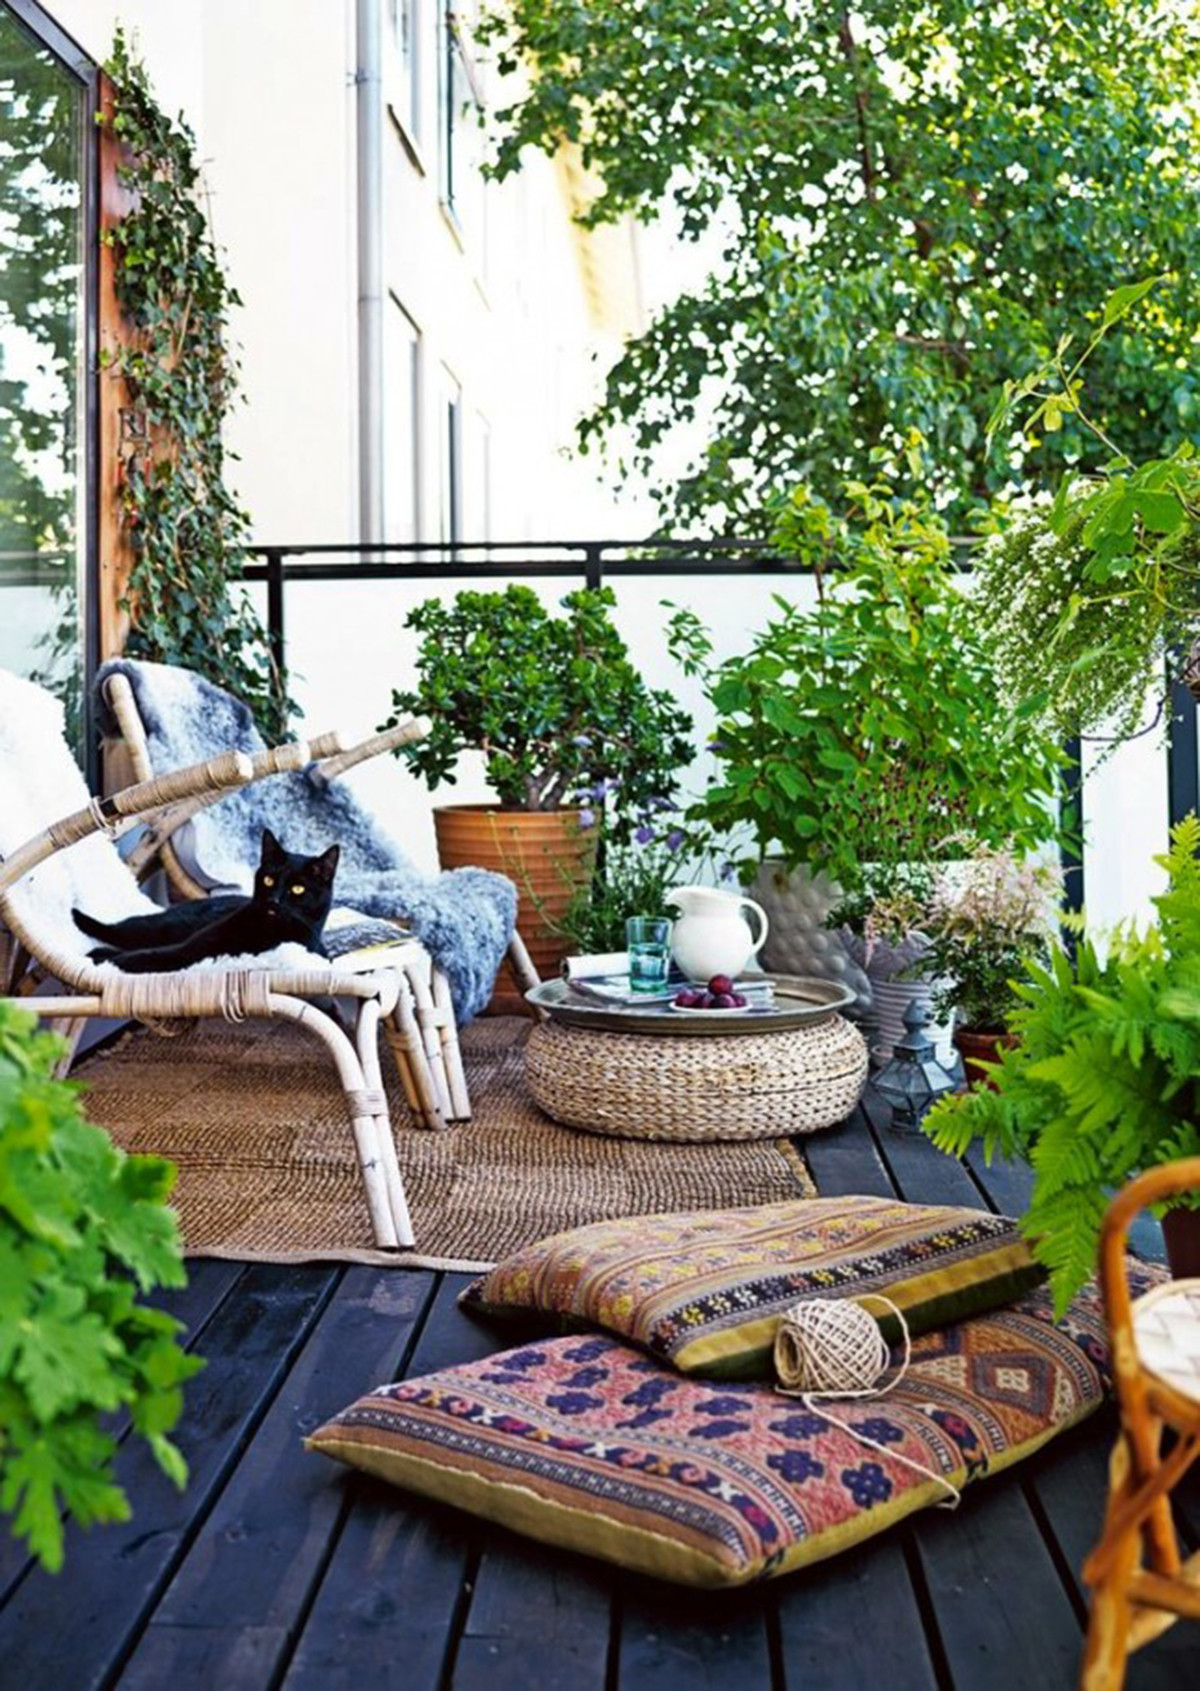 balcony garden ideas 8. private oasis PATNDJH